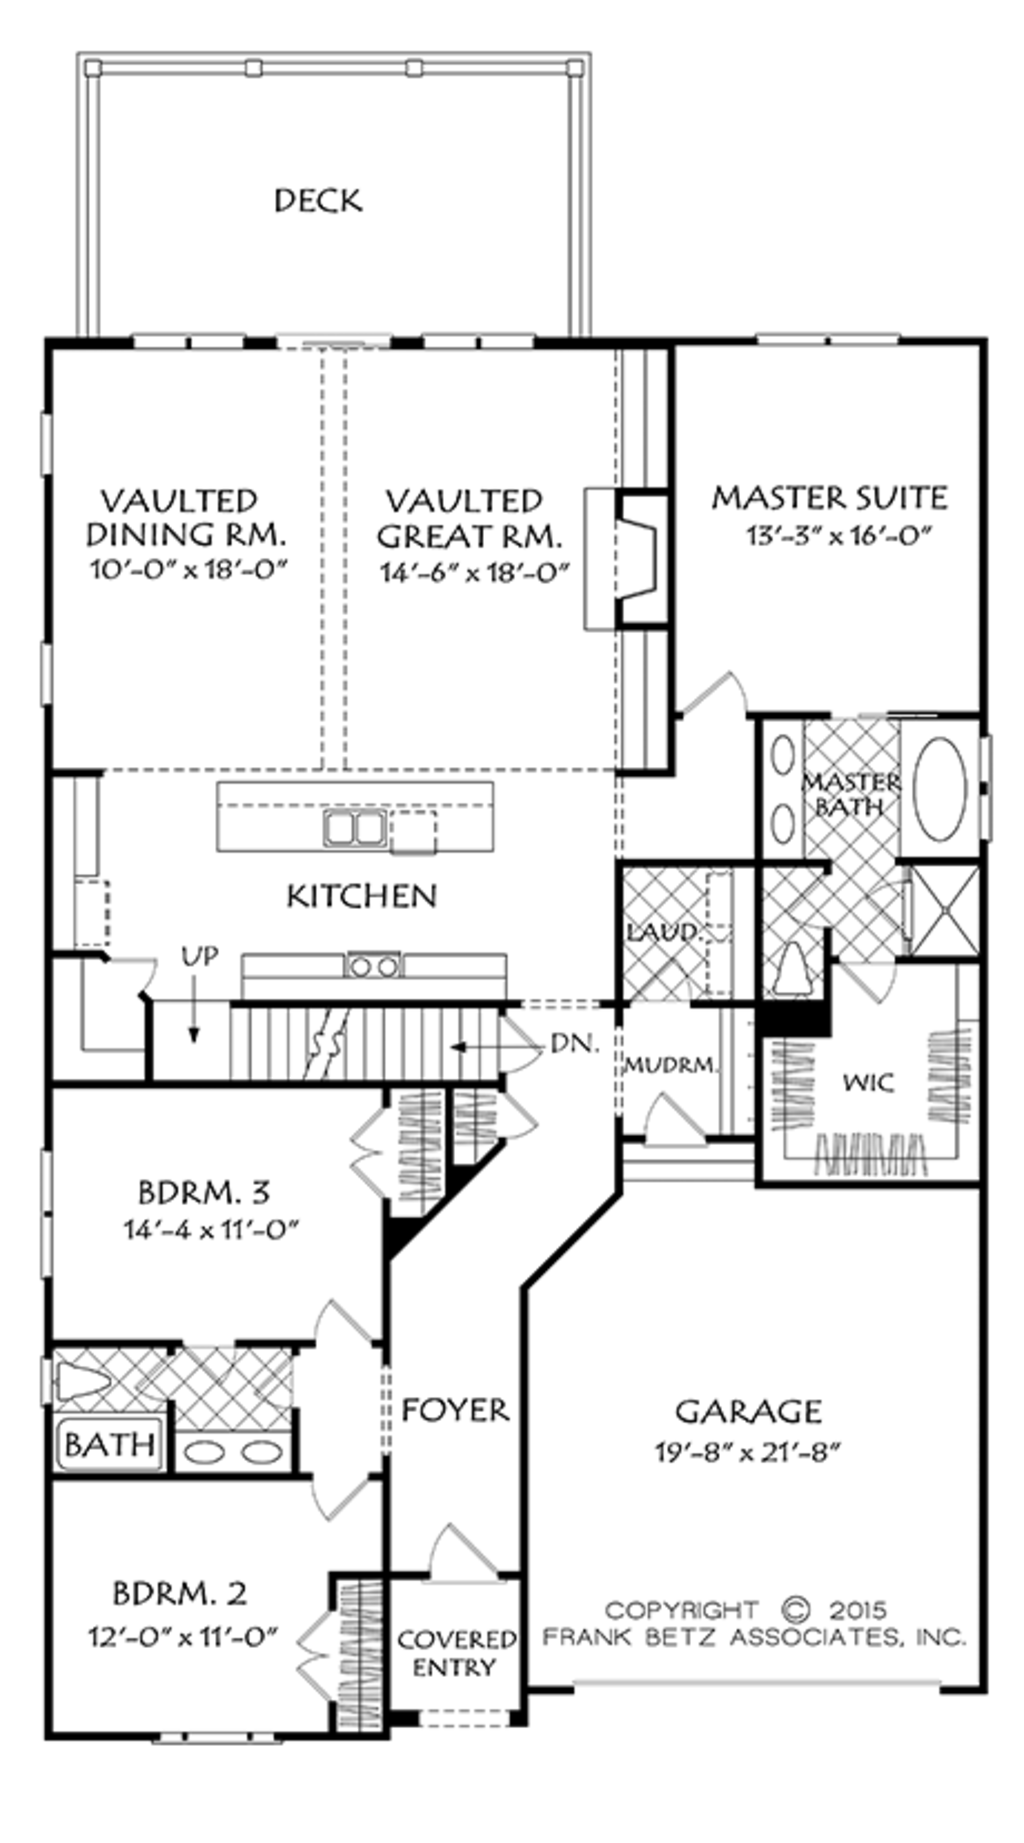 27 Design Kitchen Floor Plans That You Wonn T Miss Love With Second Floor And If You Make Entry Less Long New House Plans Country House Plans House Plans